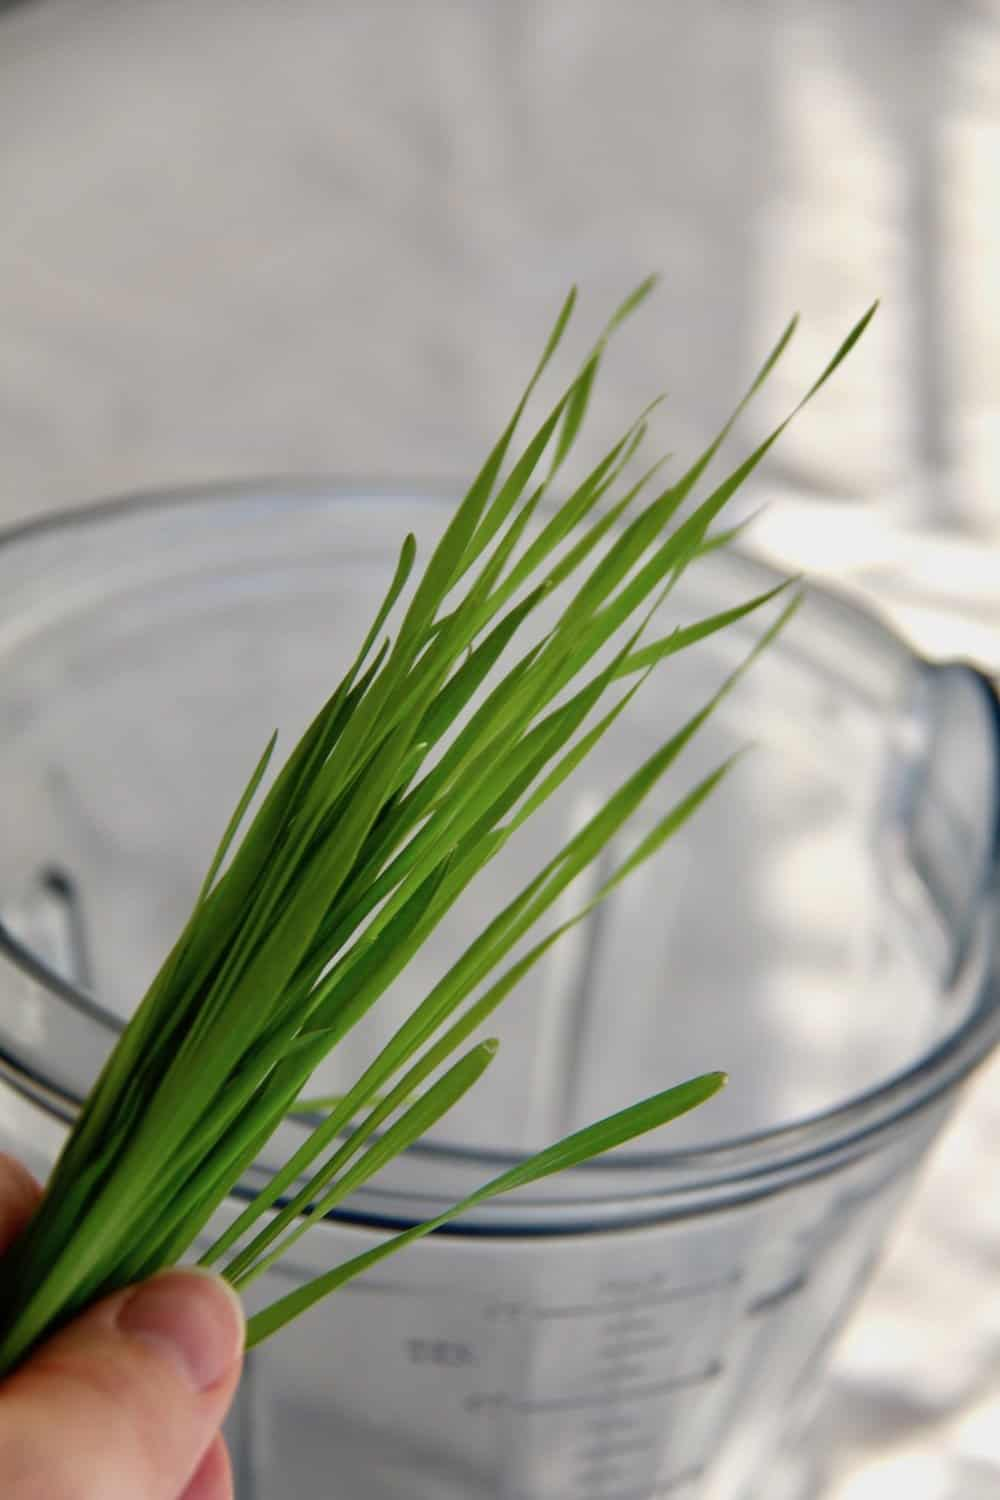 green wheatgrass blades above clear vitamix blender jug